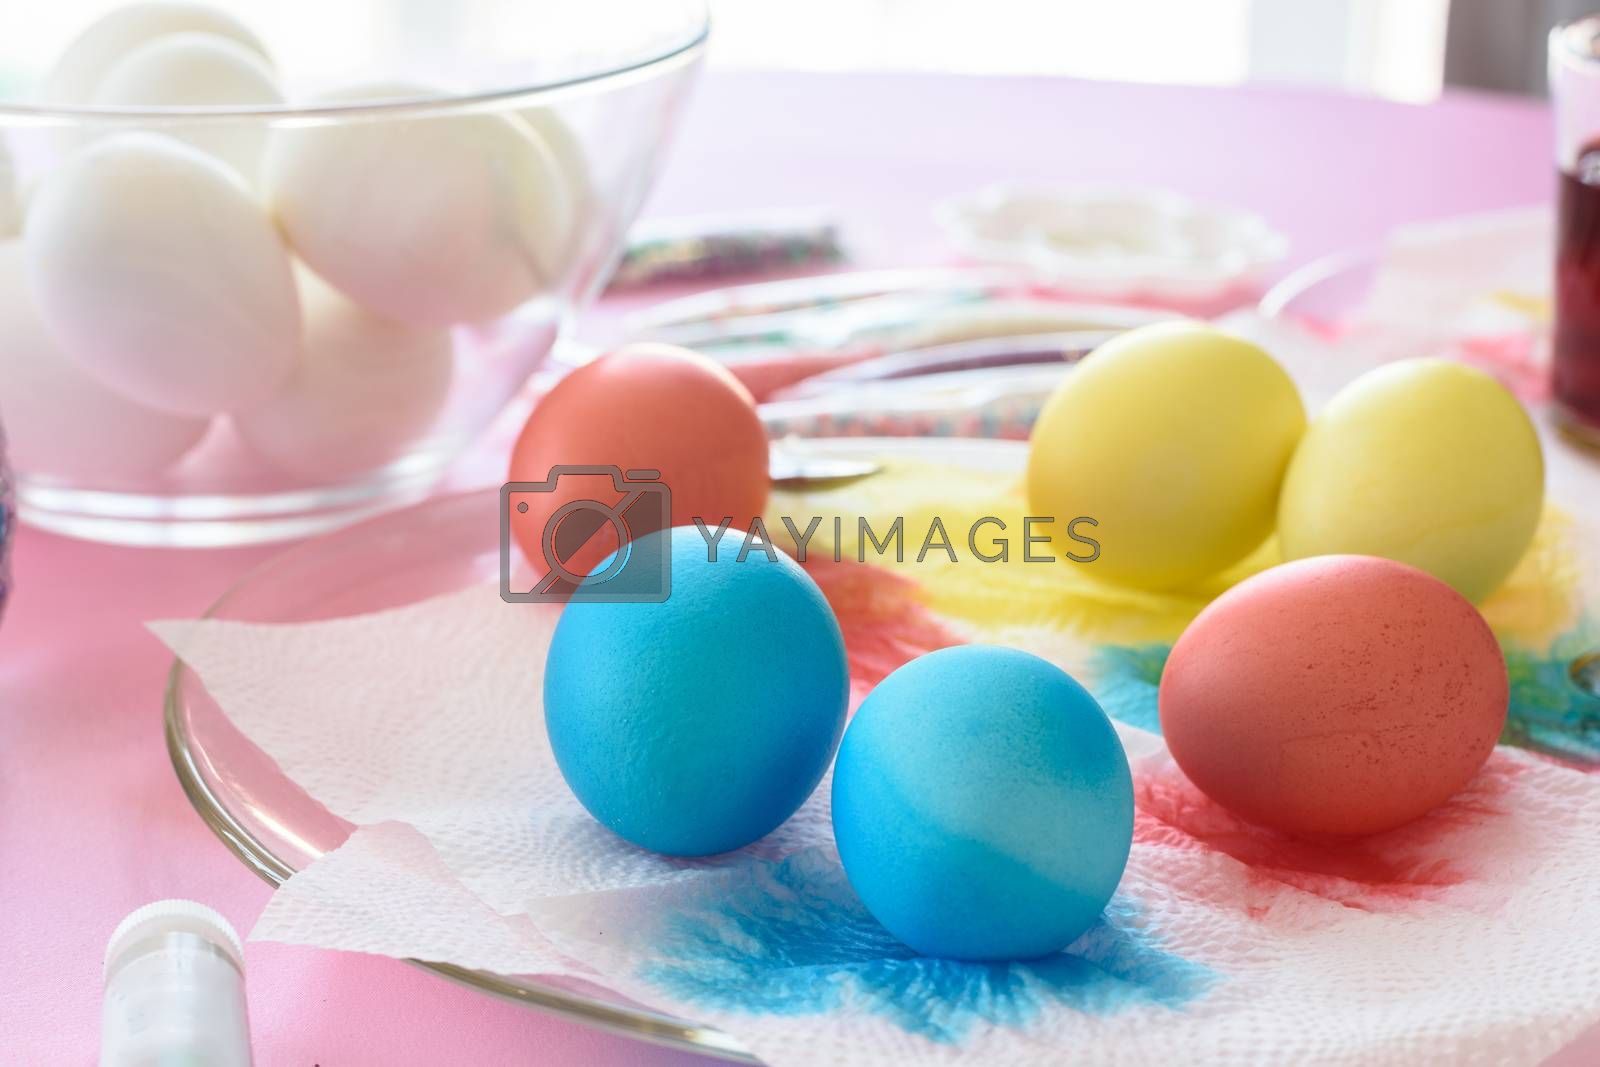 Painting in different colors of eggs for Easter